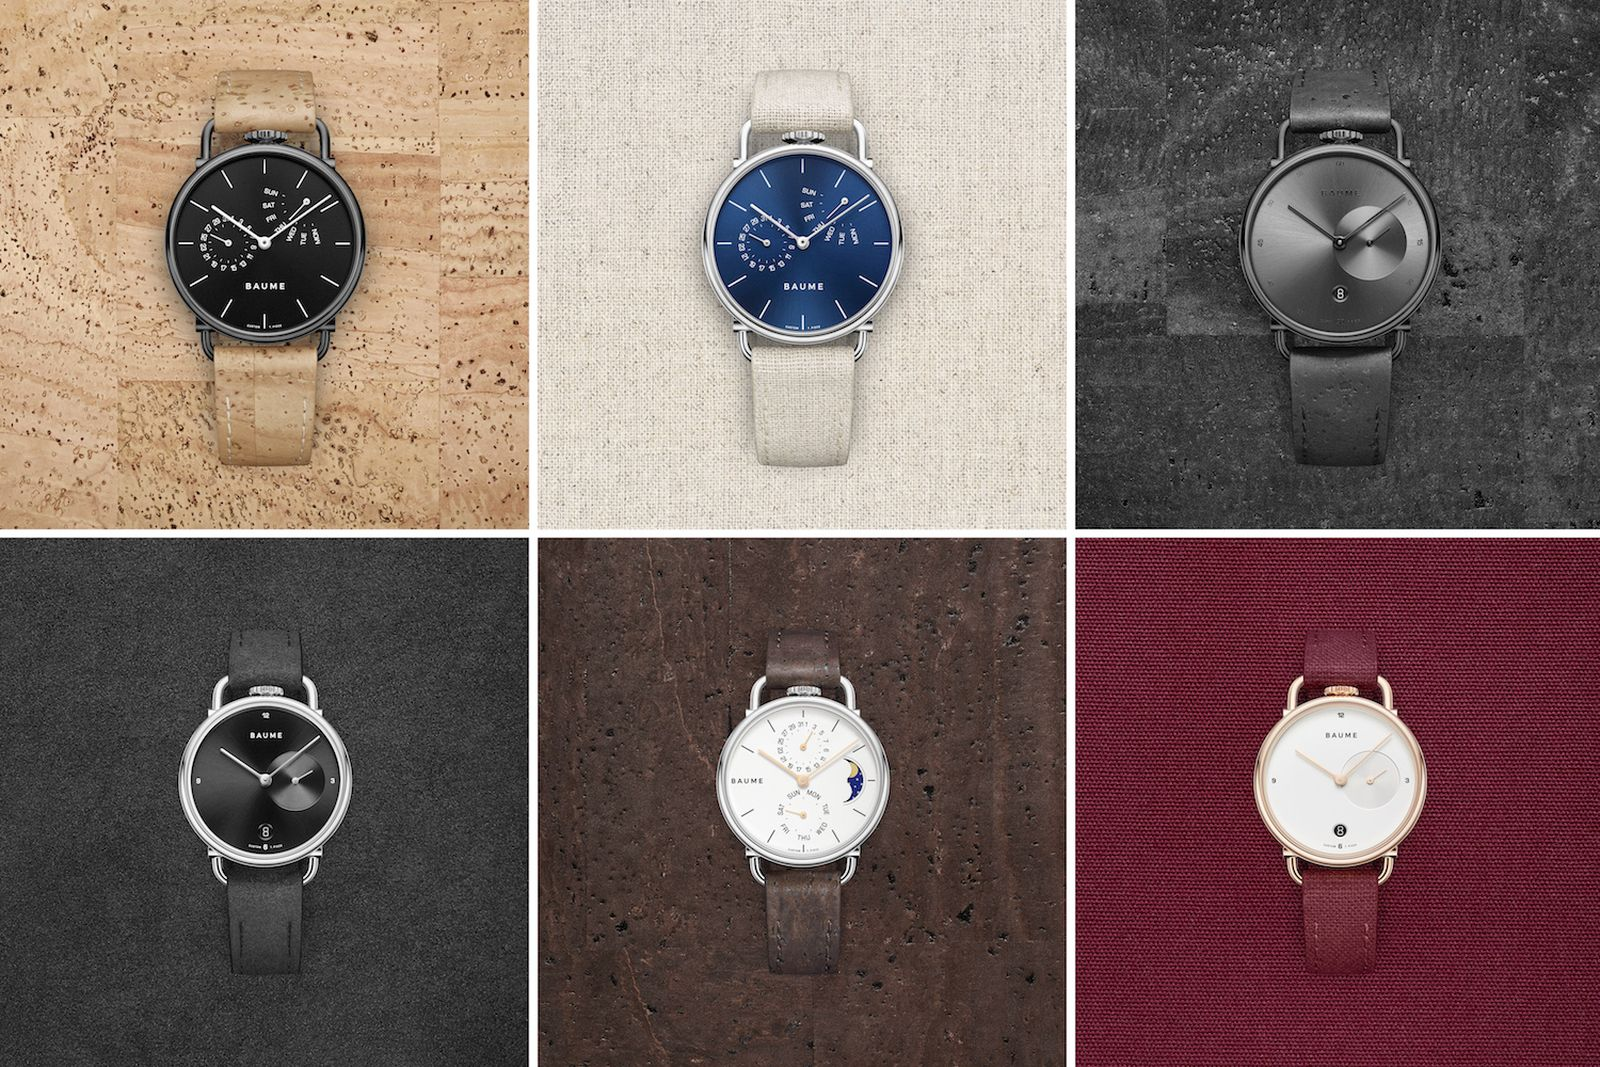 baume-sustainable-watch-collection-11